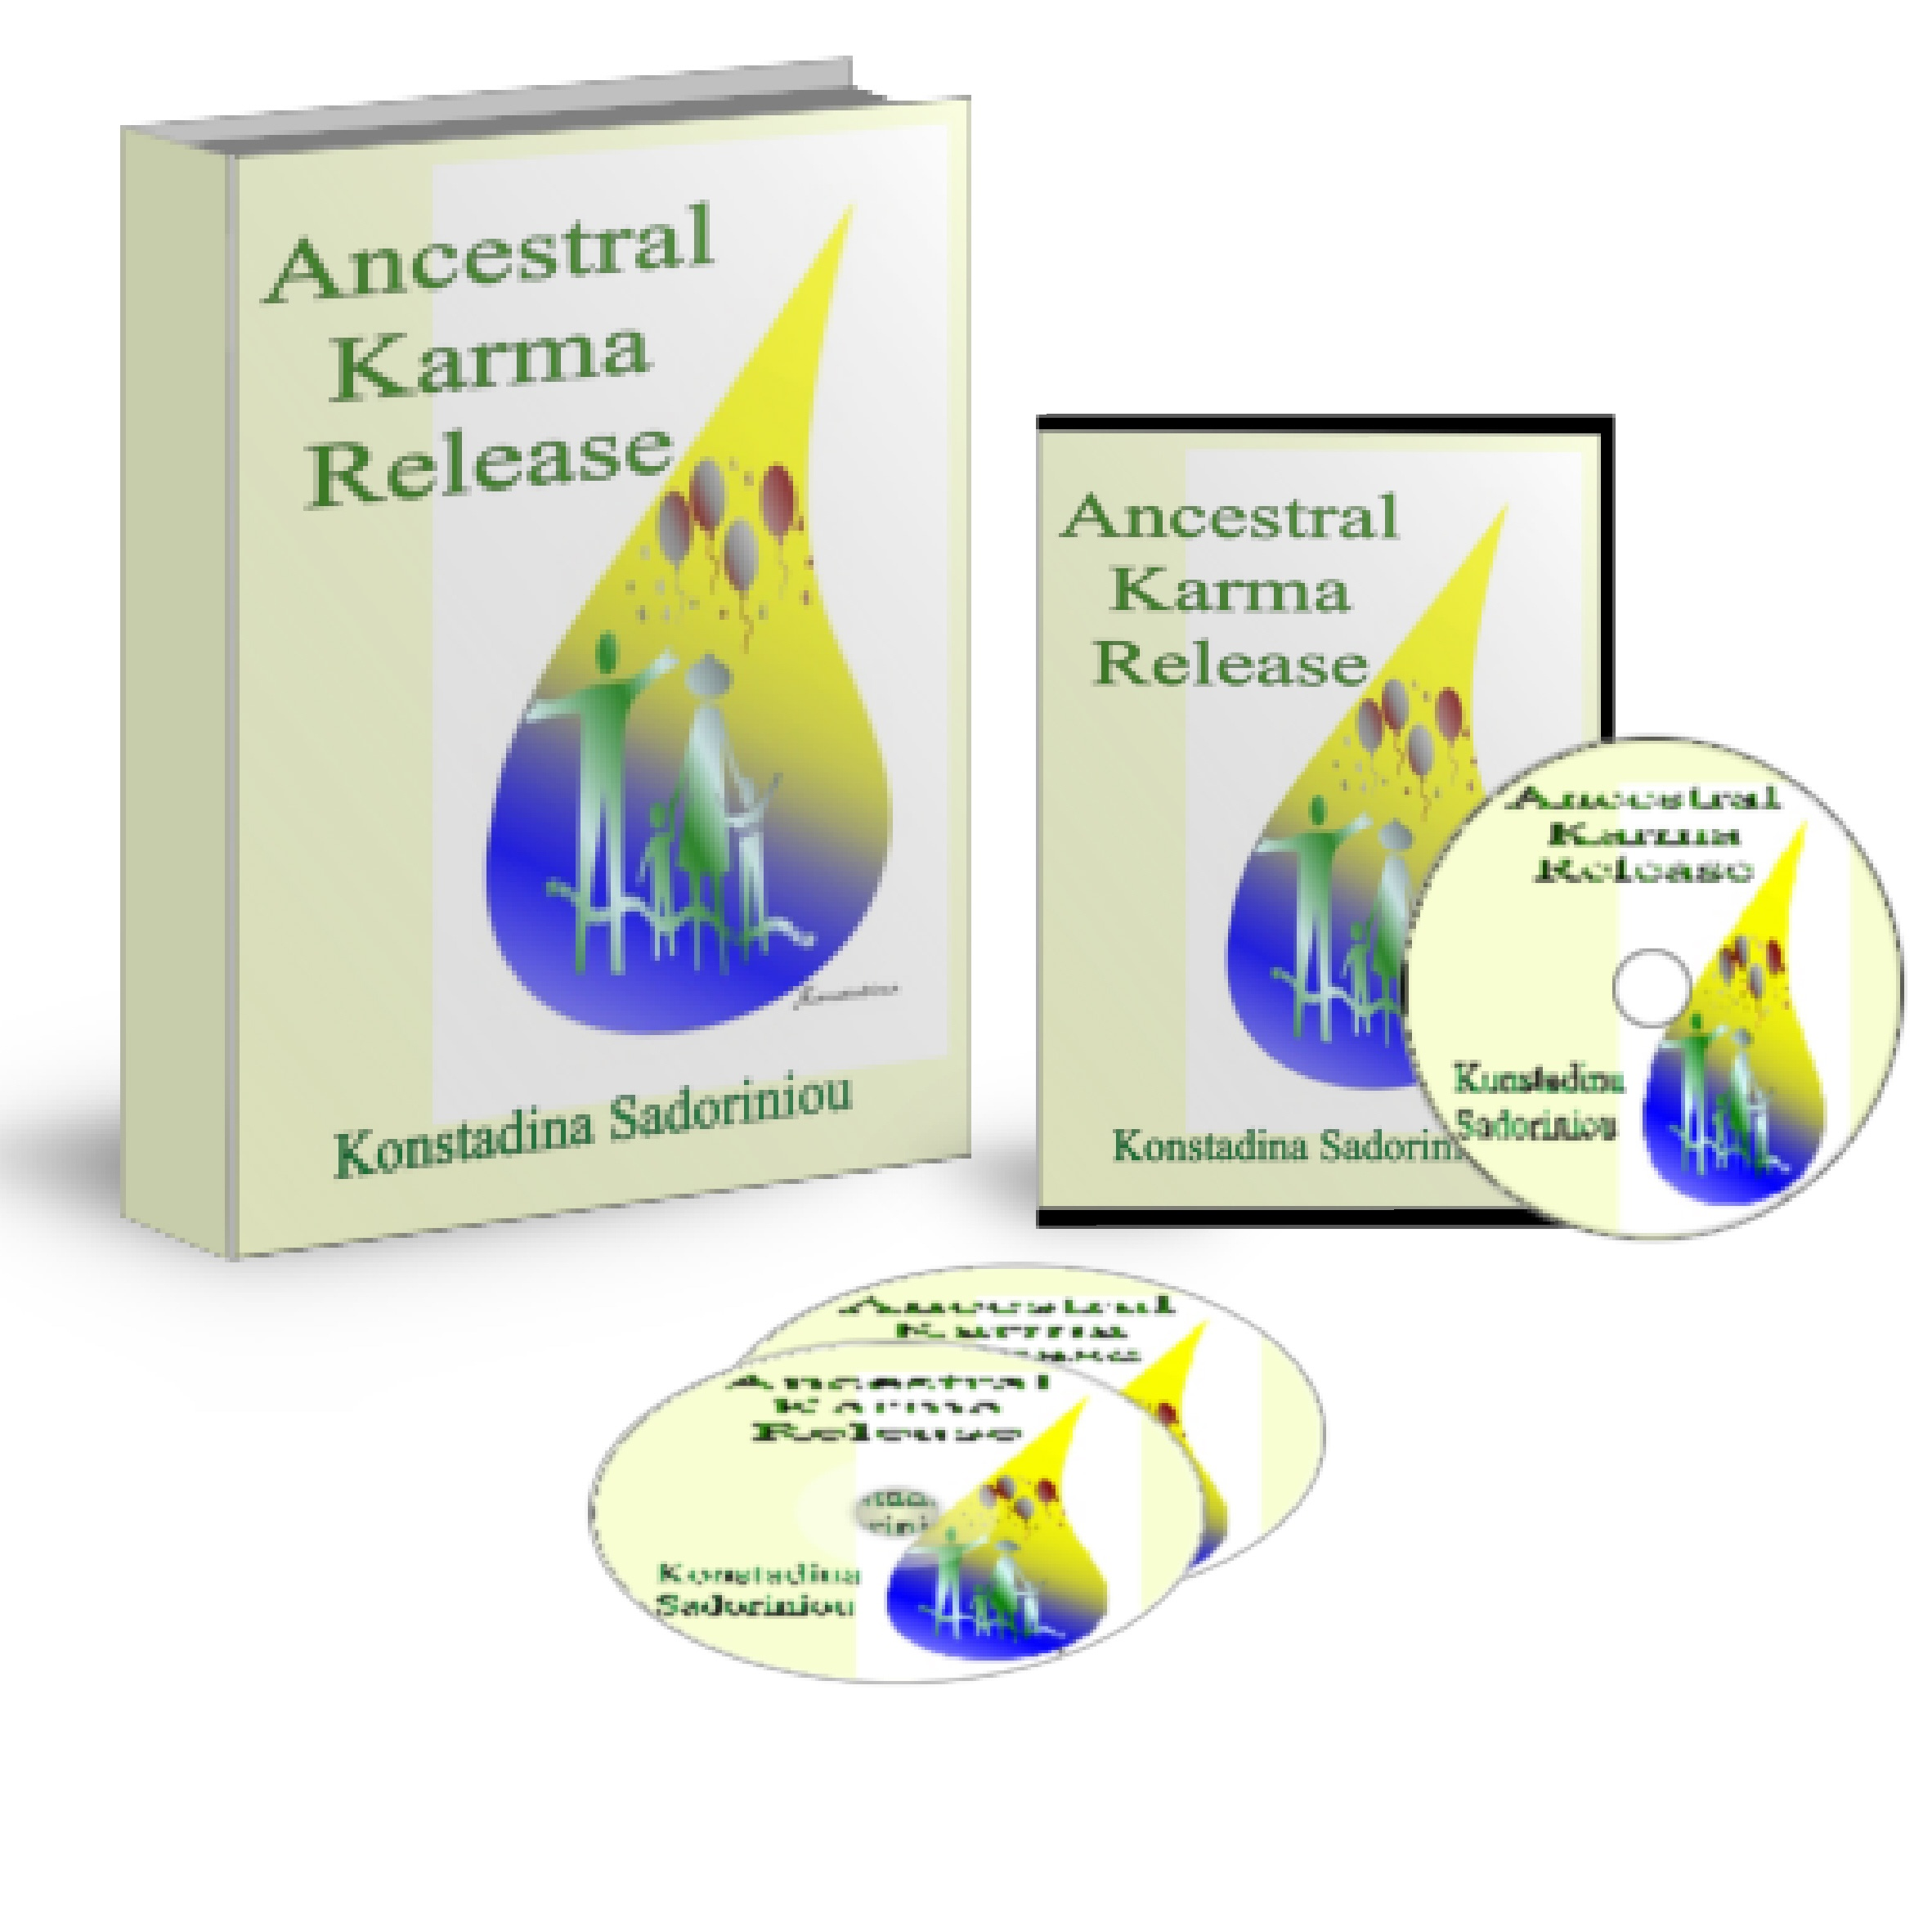 ancestral karma package